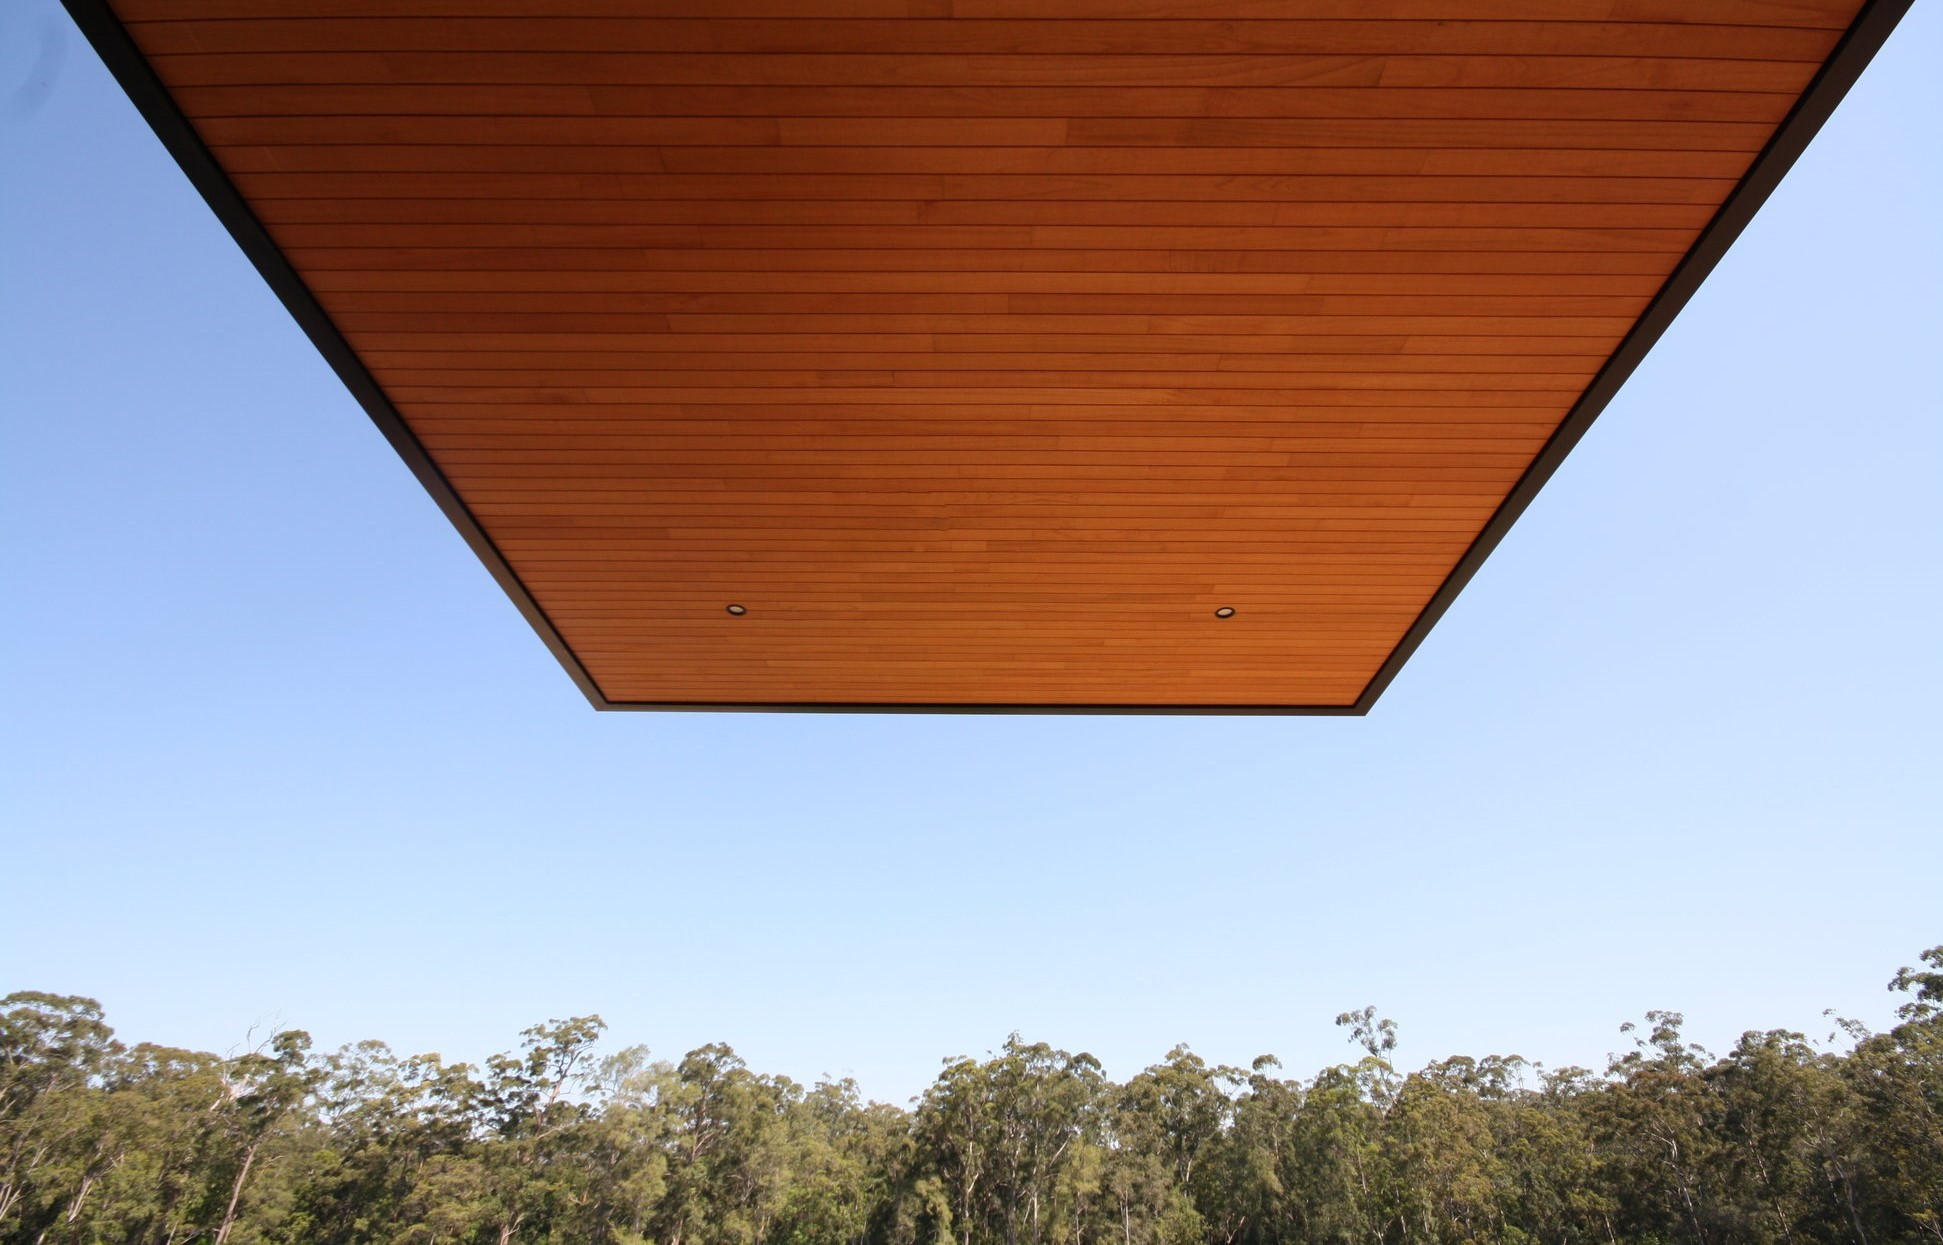 CEDAR - SATIN FINISH- designer timber, ceiling, timber ceiling, timber wall, timber panel, timber interior, timber alfresco, timber pergola, timber lining board, brisbane, ceilings gold coast, ceilings brisbane